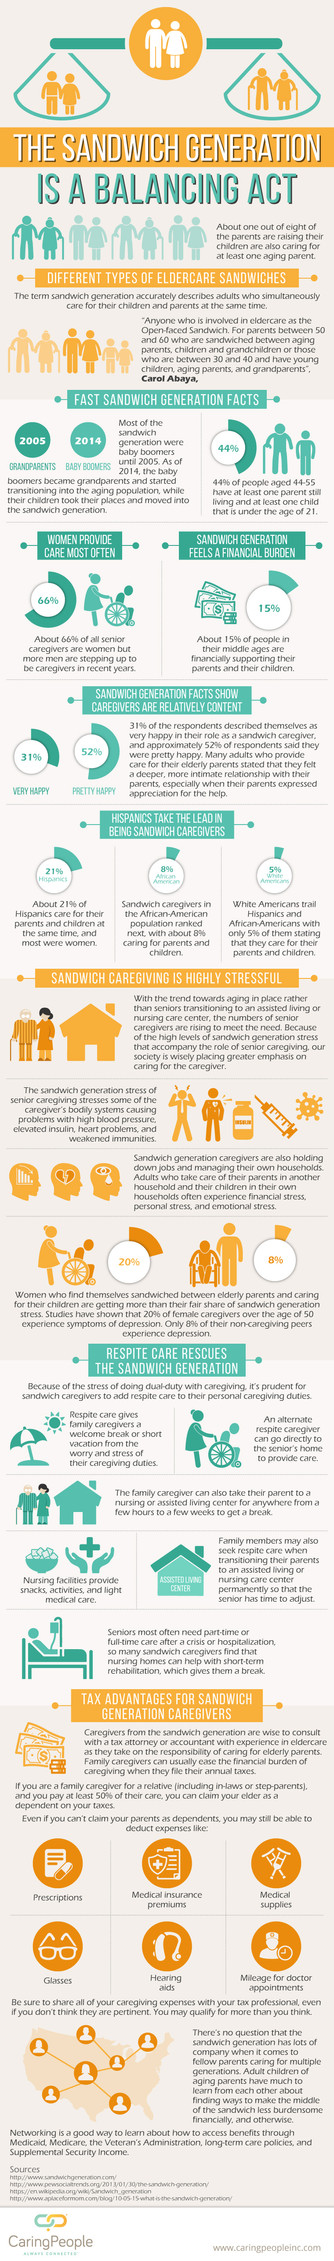 The Sandwich Generation is a Balancing Act